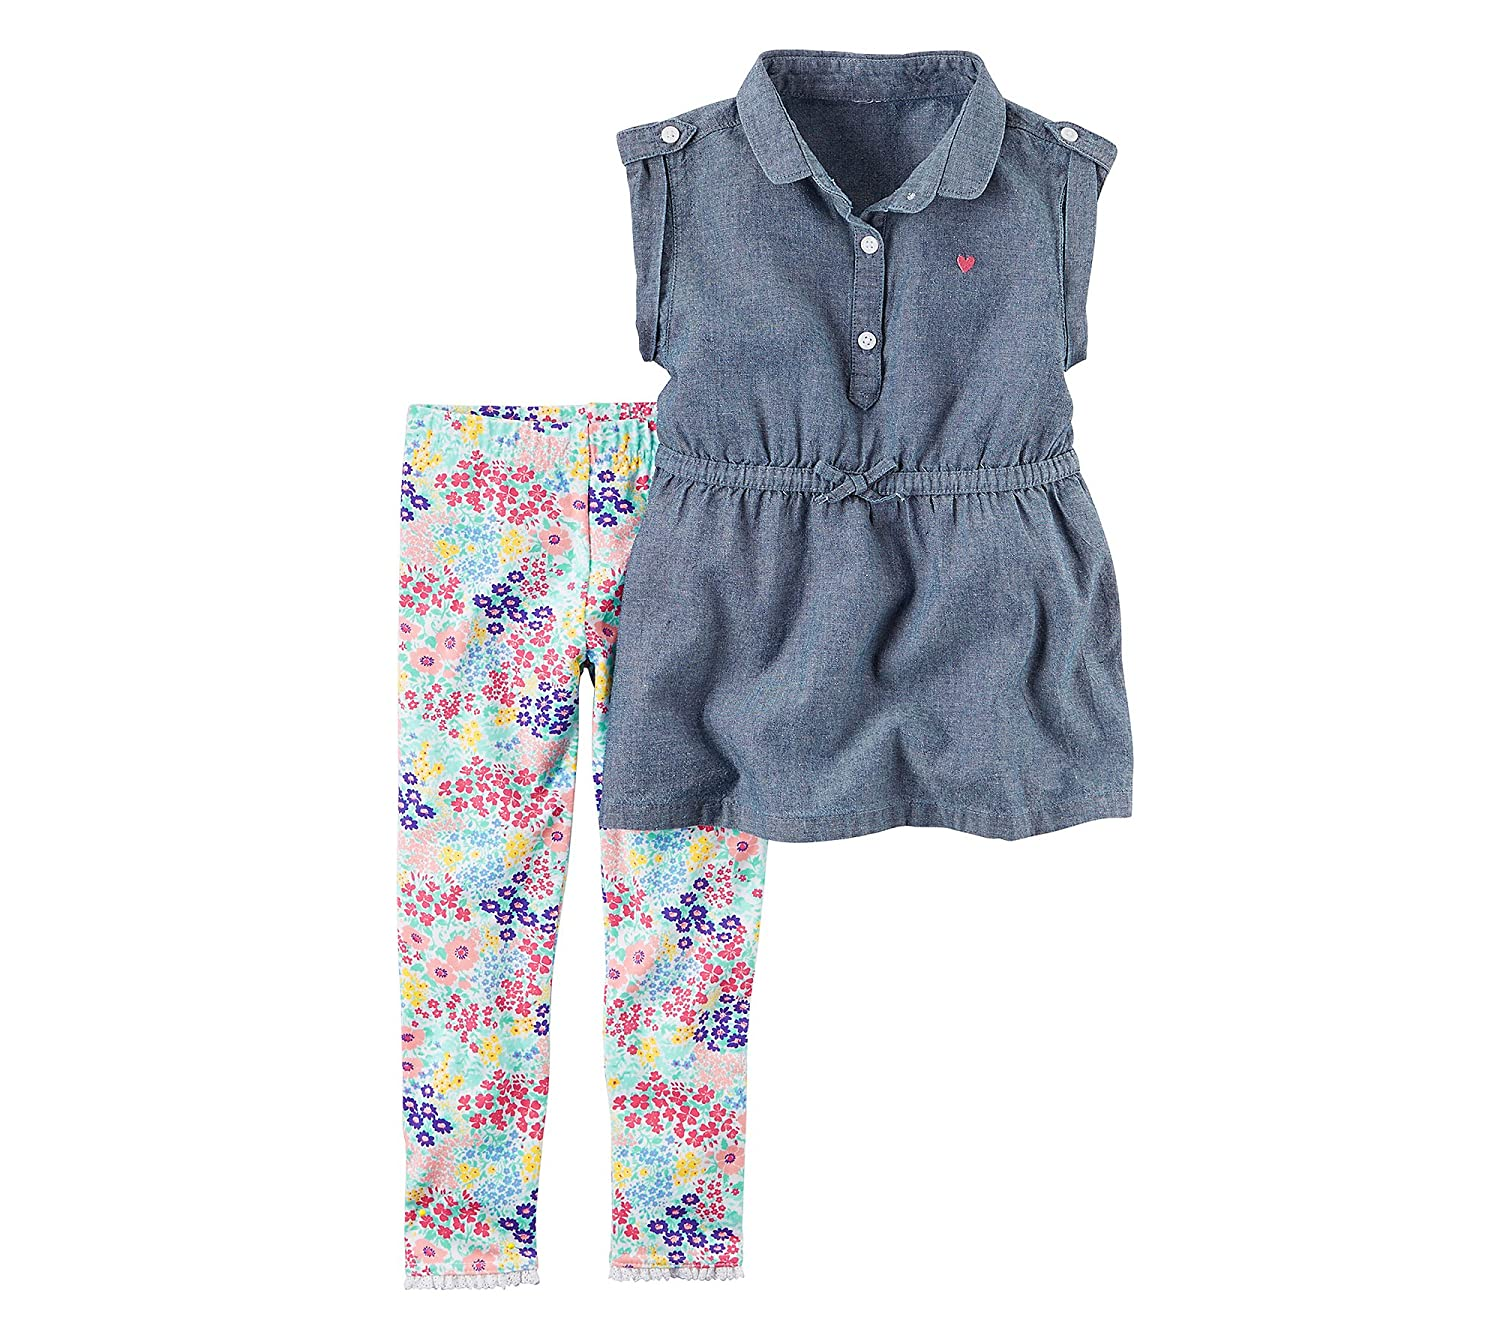 Carters Baby Girls 2-Piece Denim Tunic and Printed Leggings Set